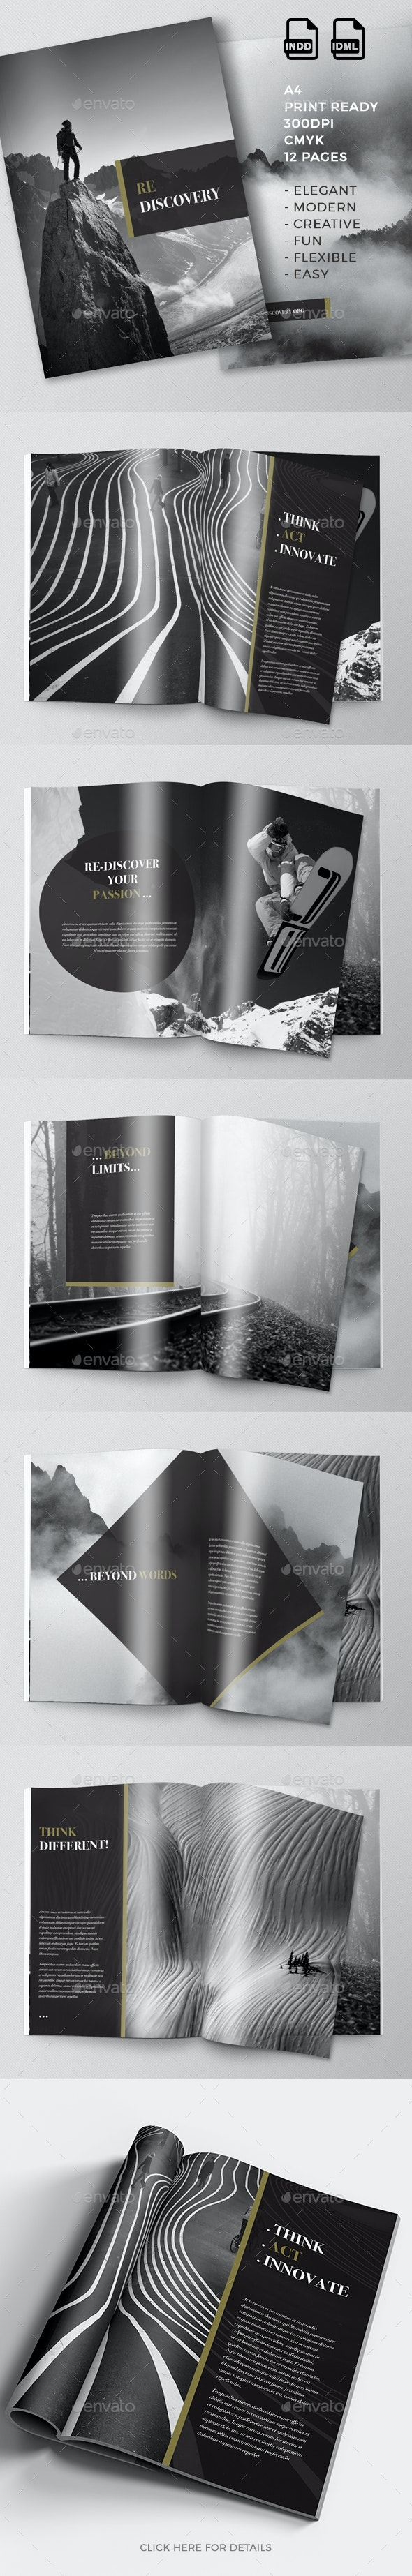 Re-Discovery | Motivational Creative Brochure - Brochures Print Templates